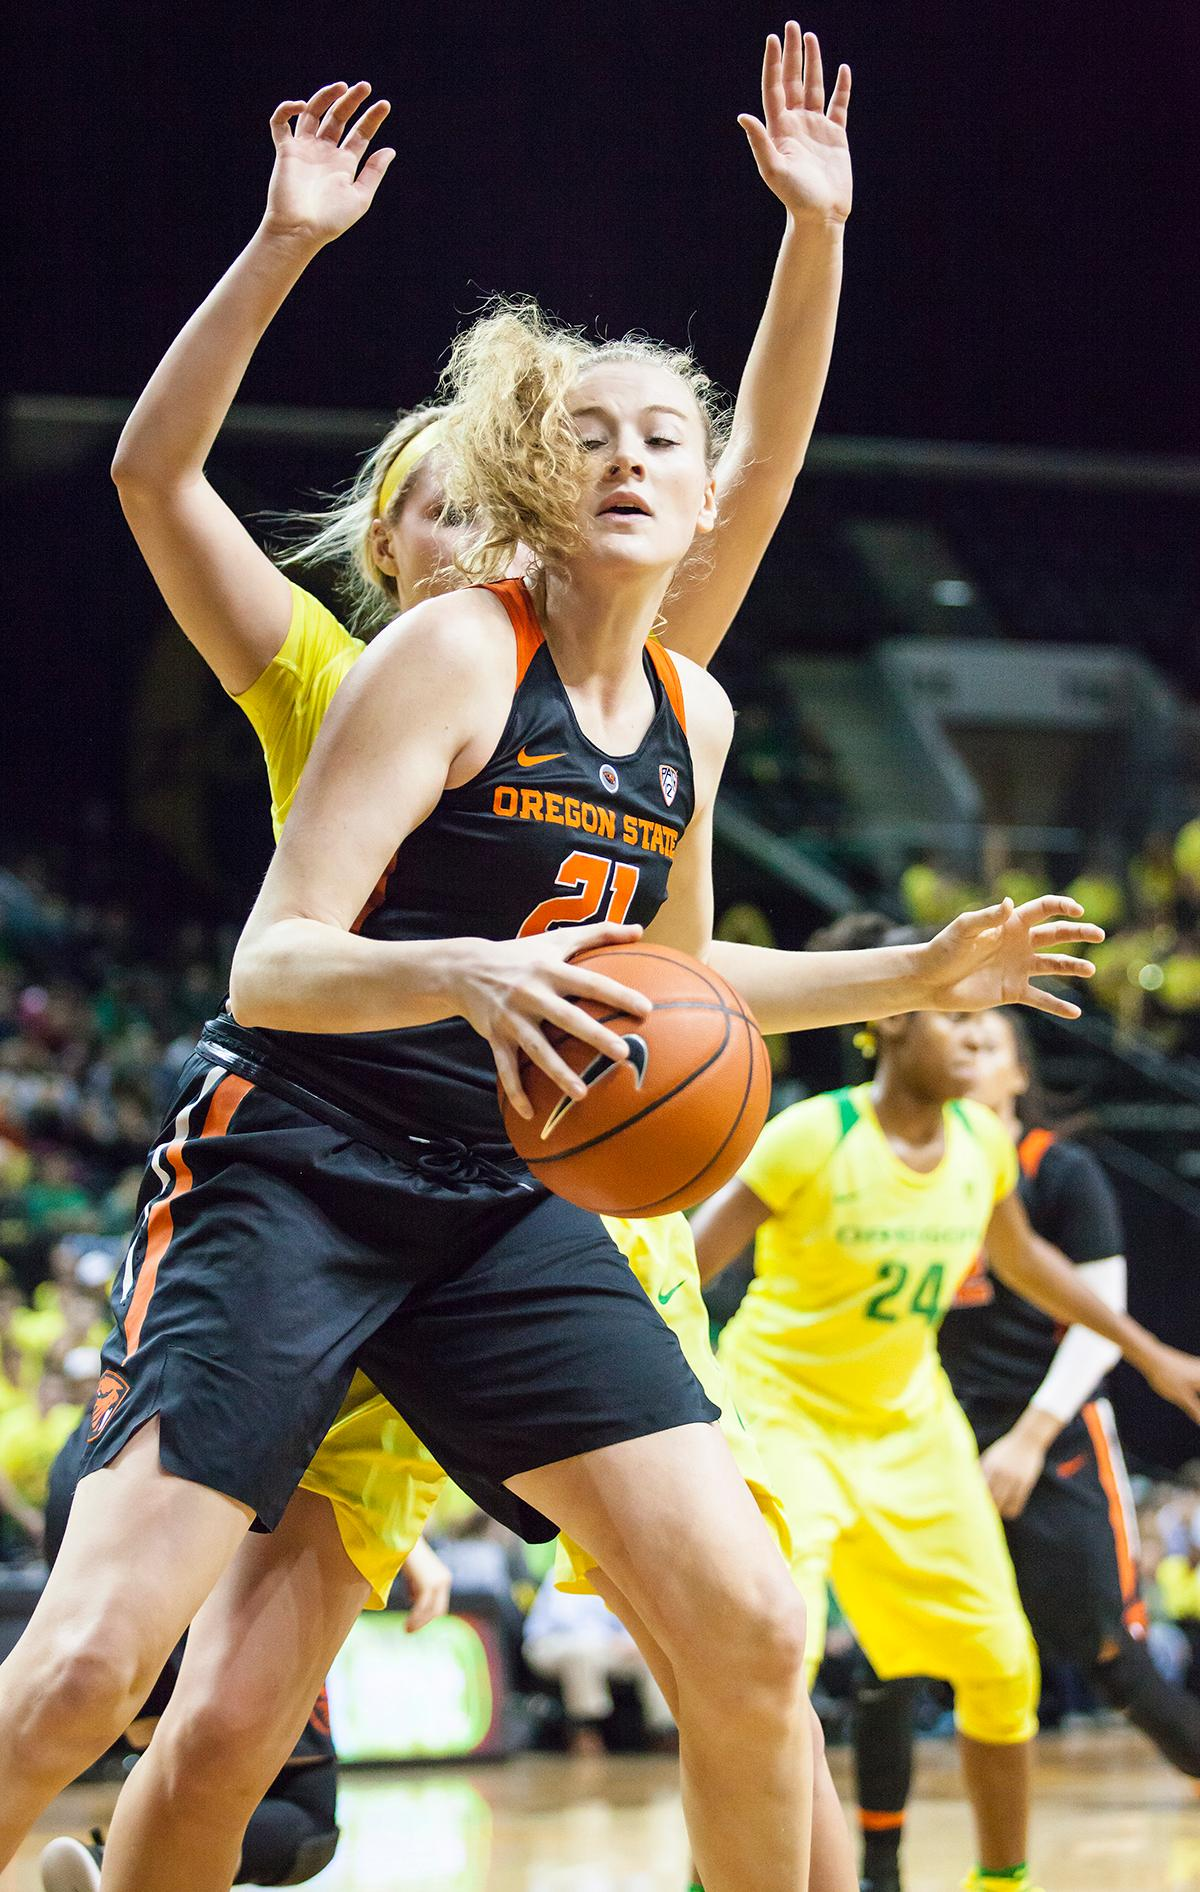 Oregon State Center Marie Gulich (#21) attempts to keep the ball away from an Oregon defender. Gulich finished out the night with 6 rebounds. The Oregon Ducks lost 40 to 43 against the Oregon State Beavers after a tightly matched 4th quarter. Photo by Ben Lonergan, Oregon News Lab